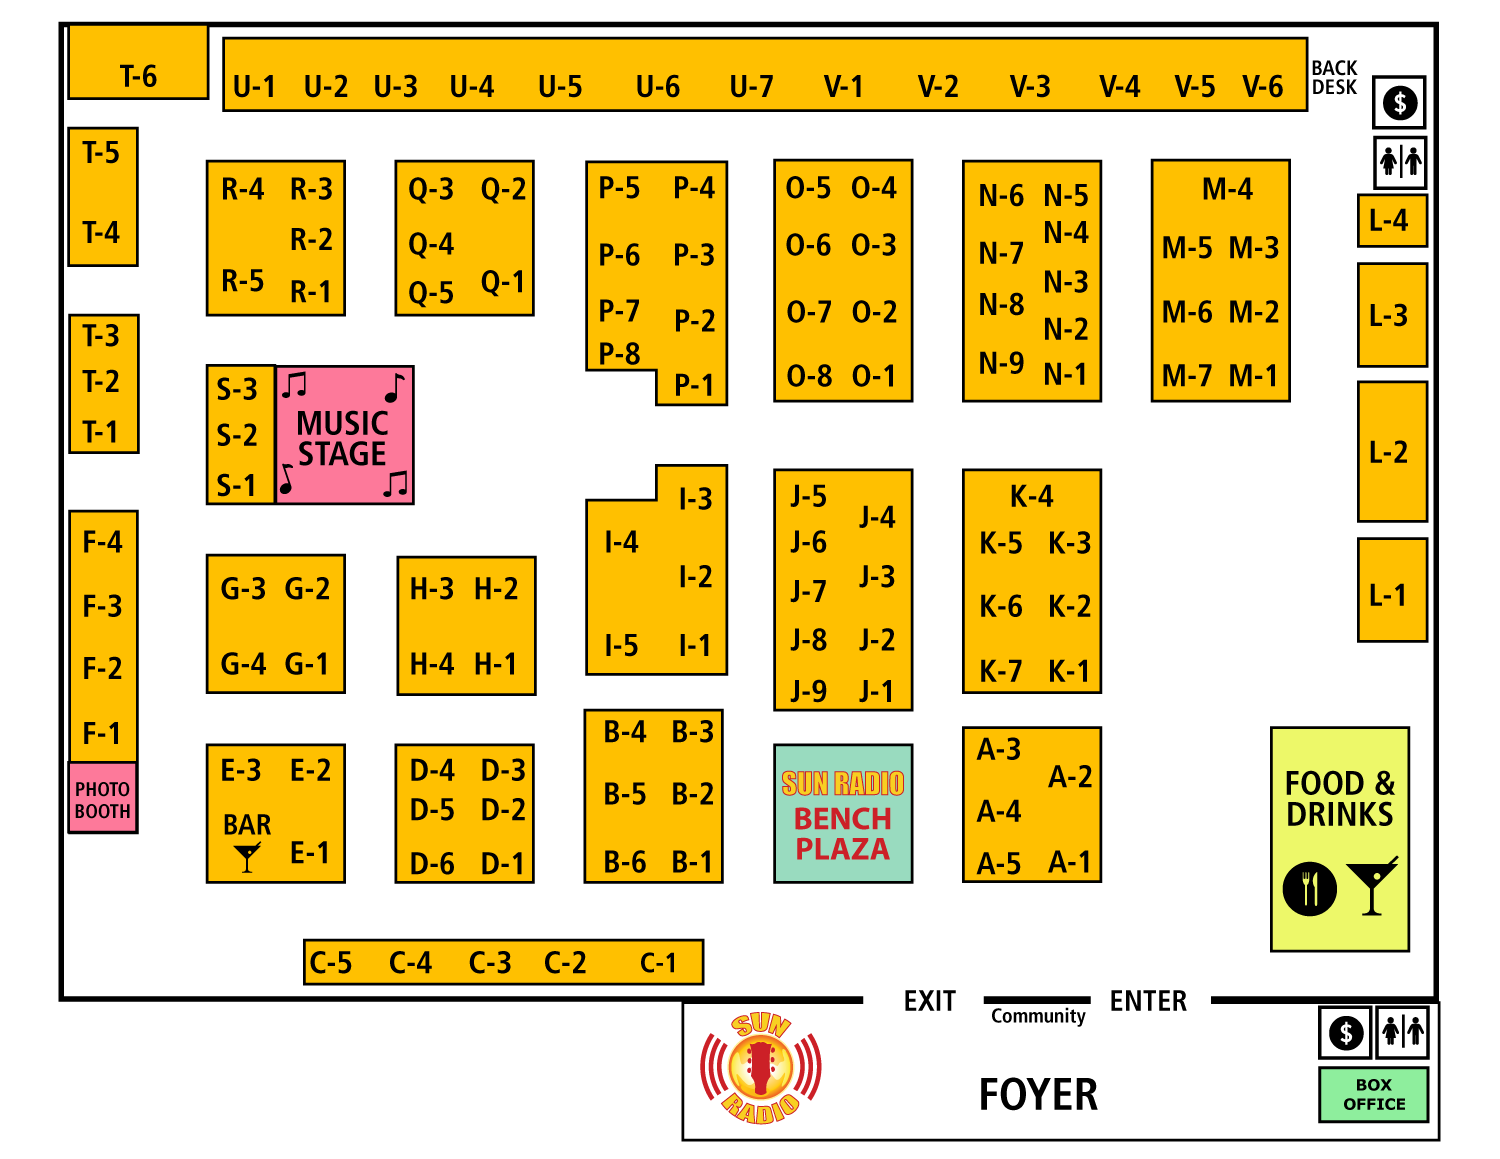 Armadillo 2017 Booth Map